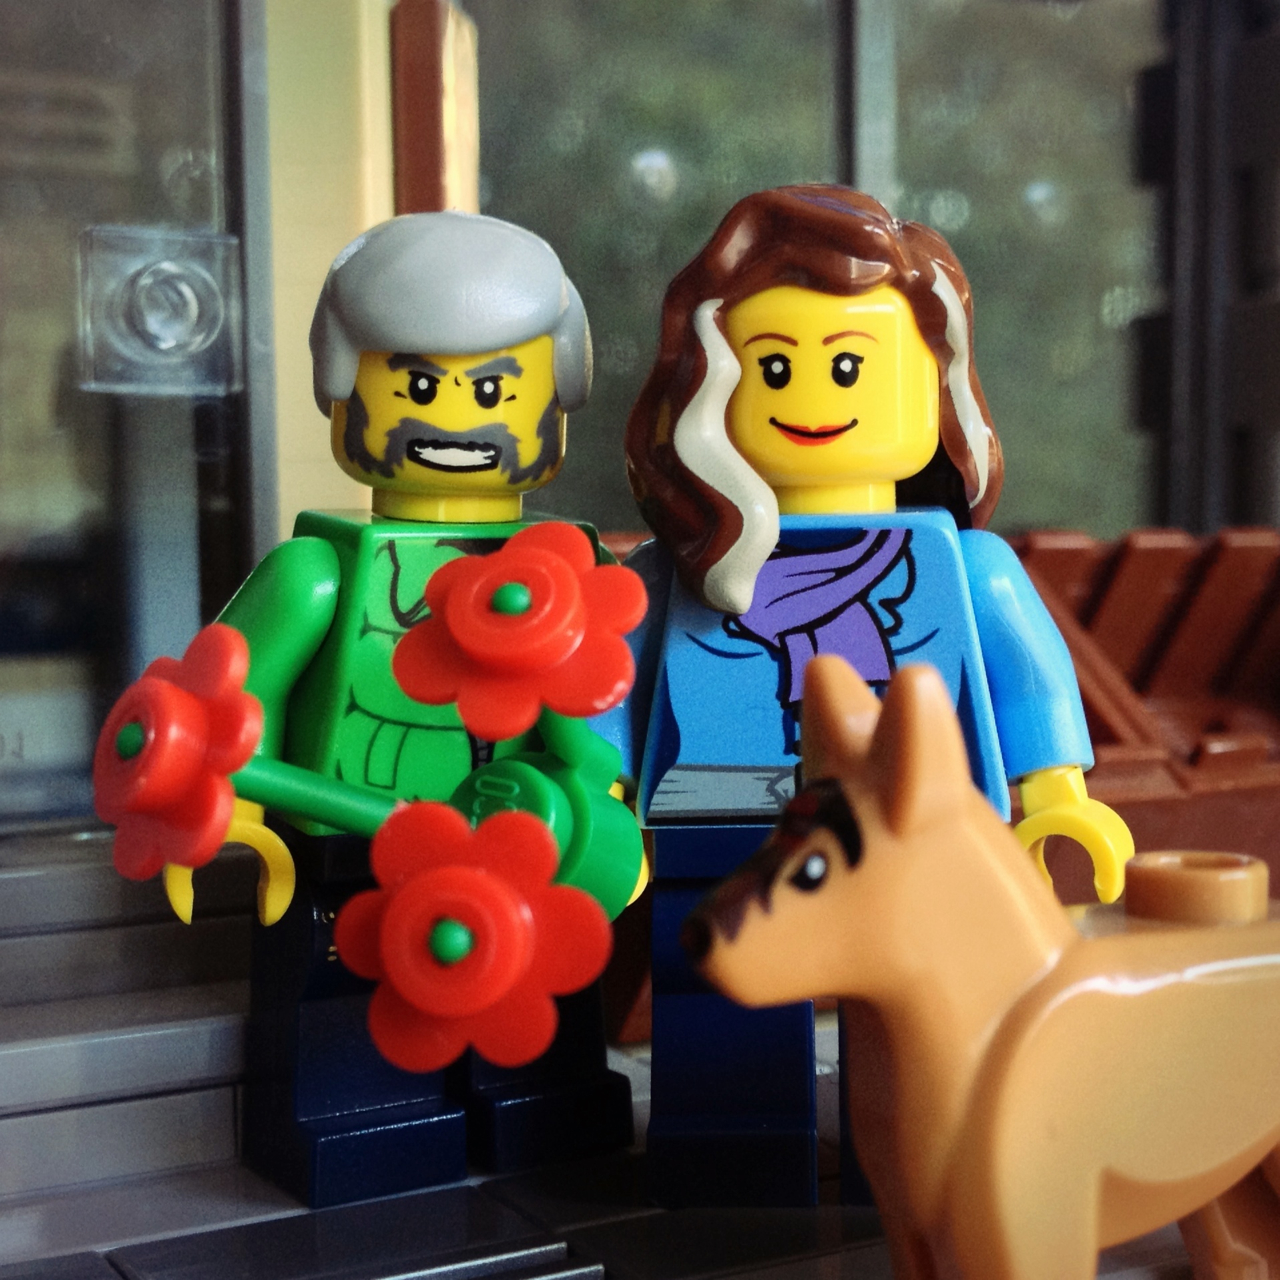 LegoGenre 00216: A Very Happy Valentine's Day.